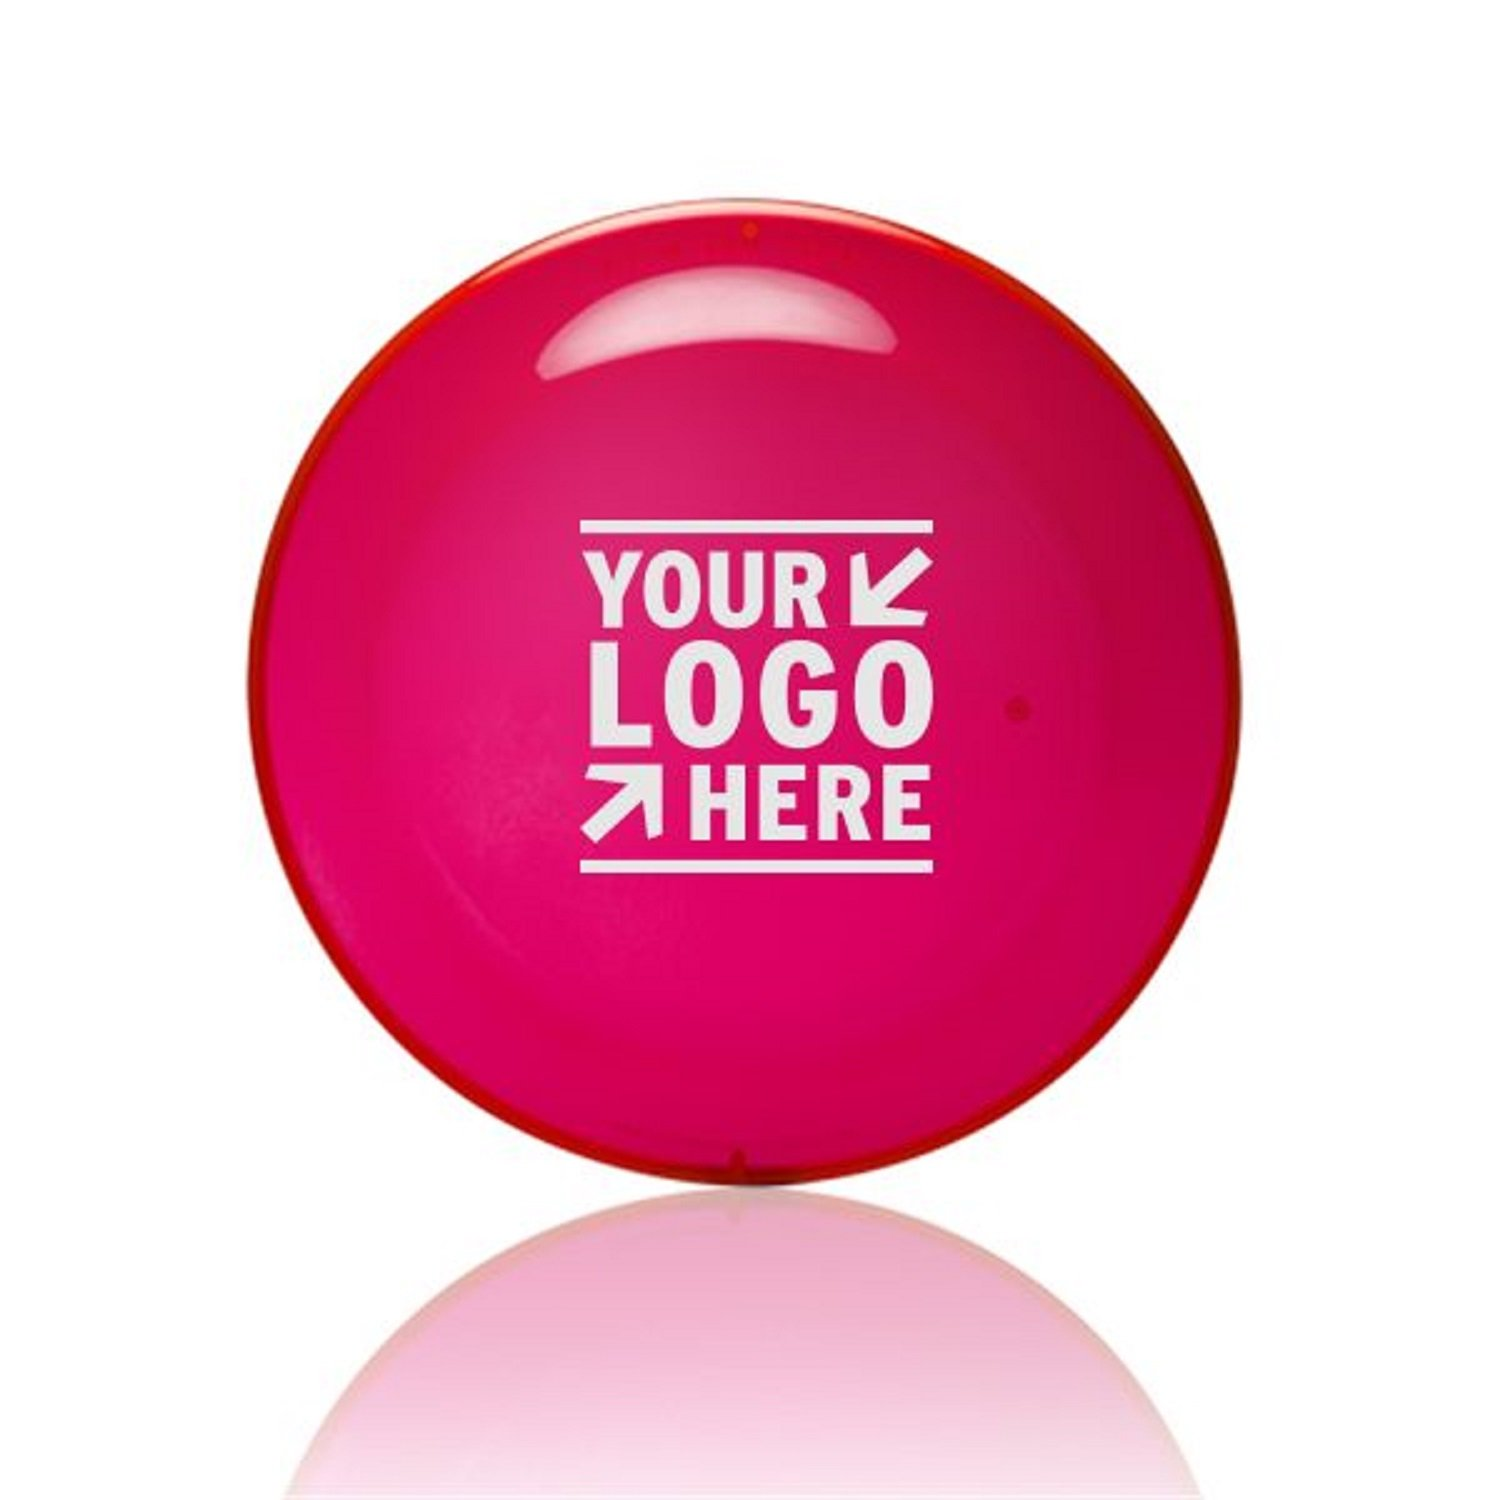 50 Custom Printed USA Made, Frisbee 9″ Translucent Color Flying Disc with your Logo or Message